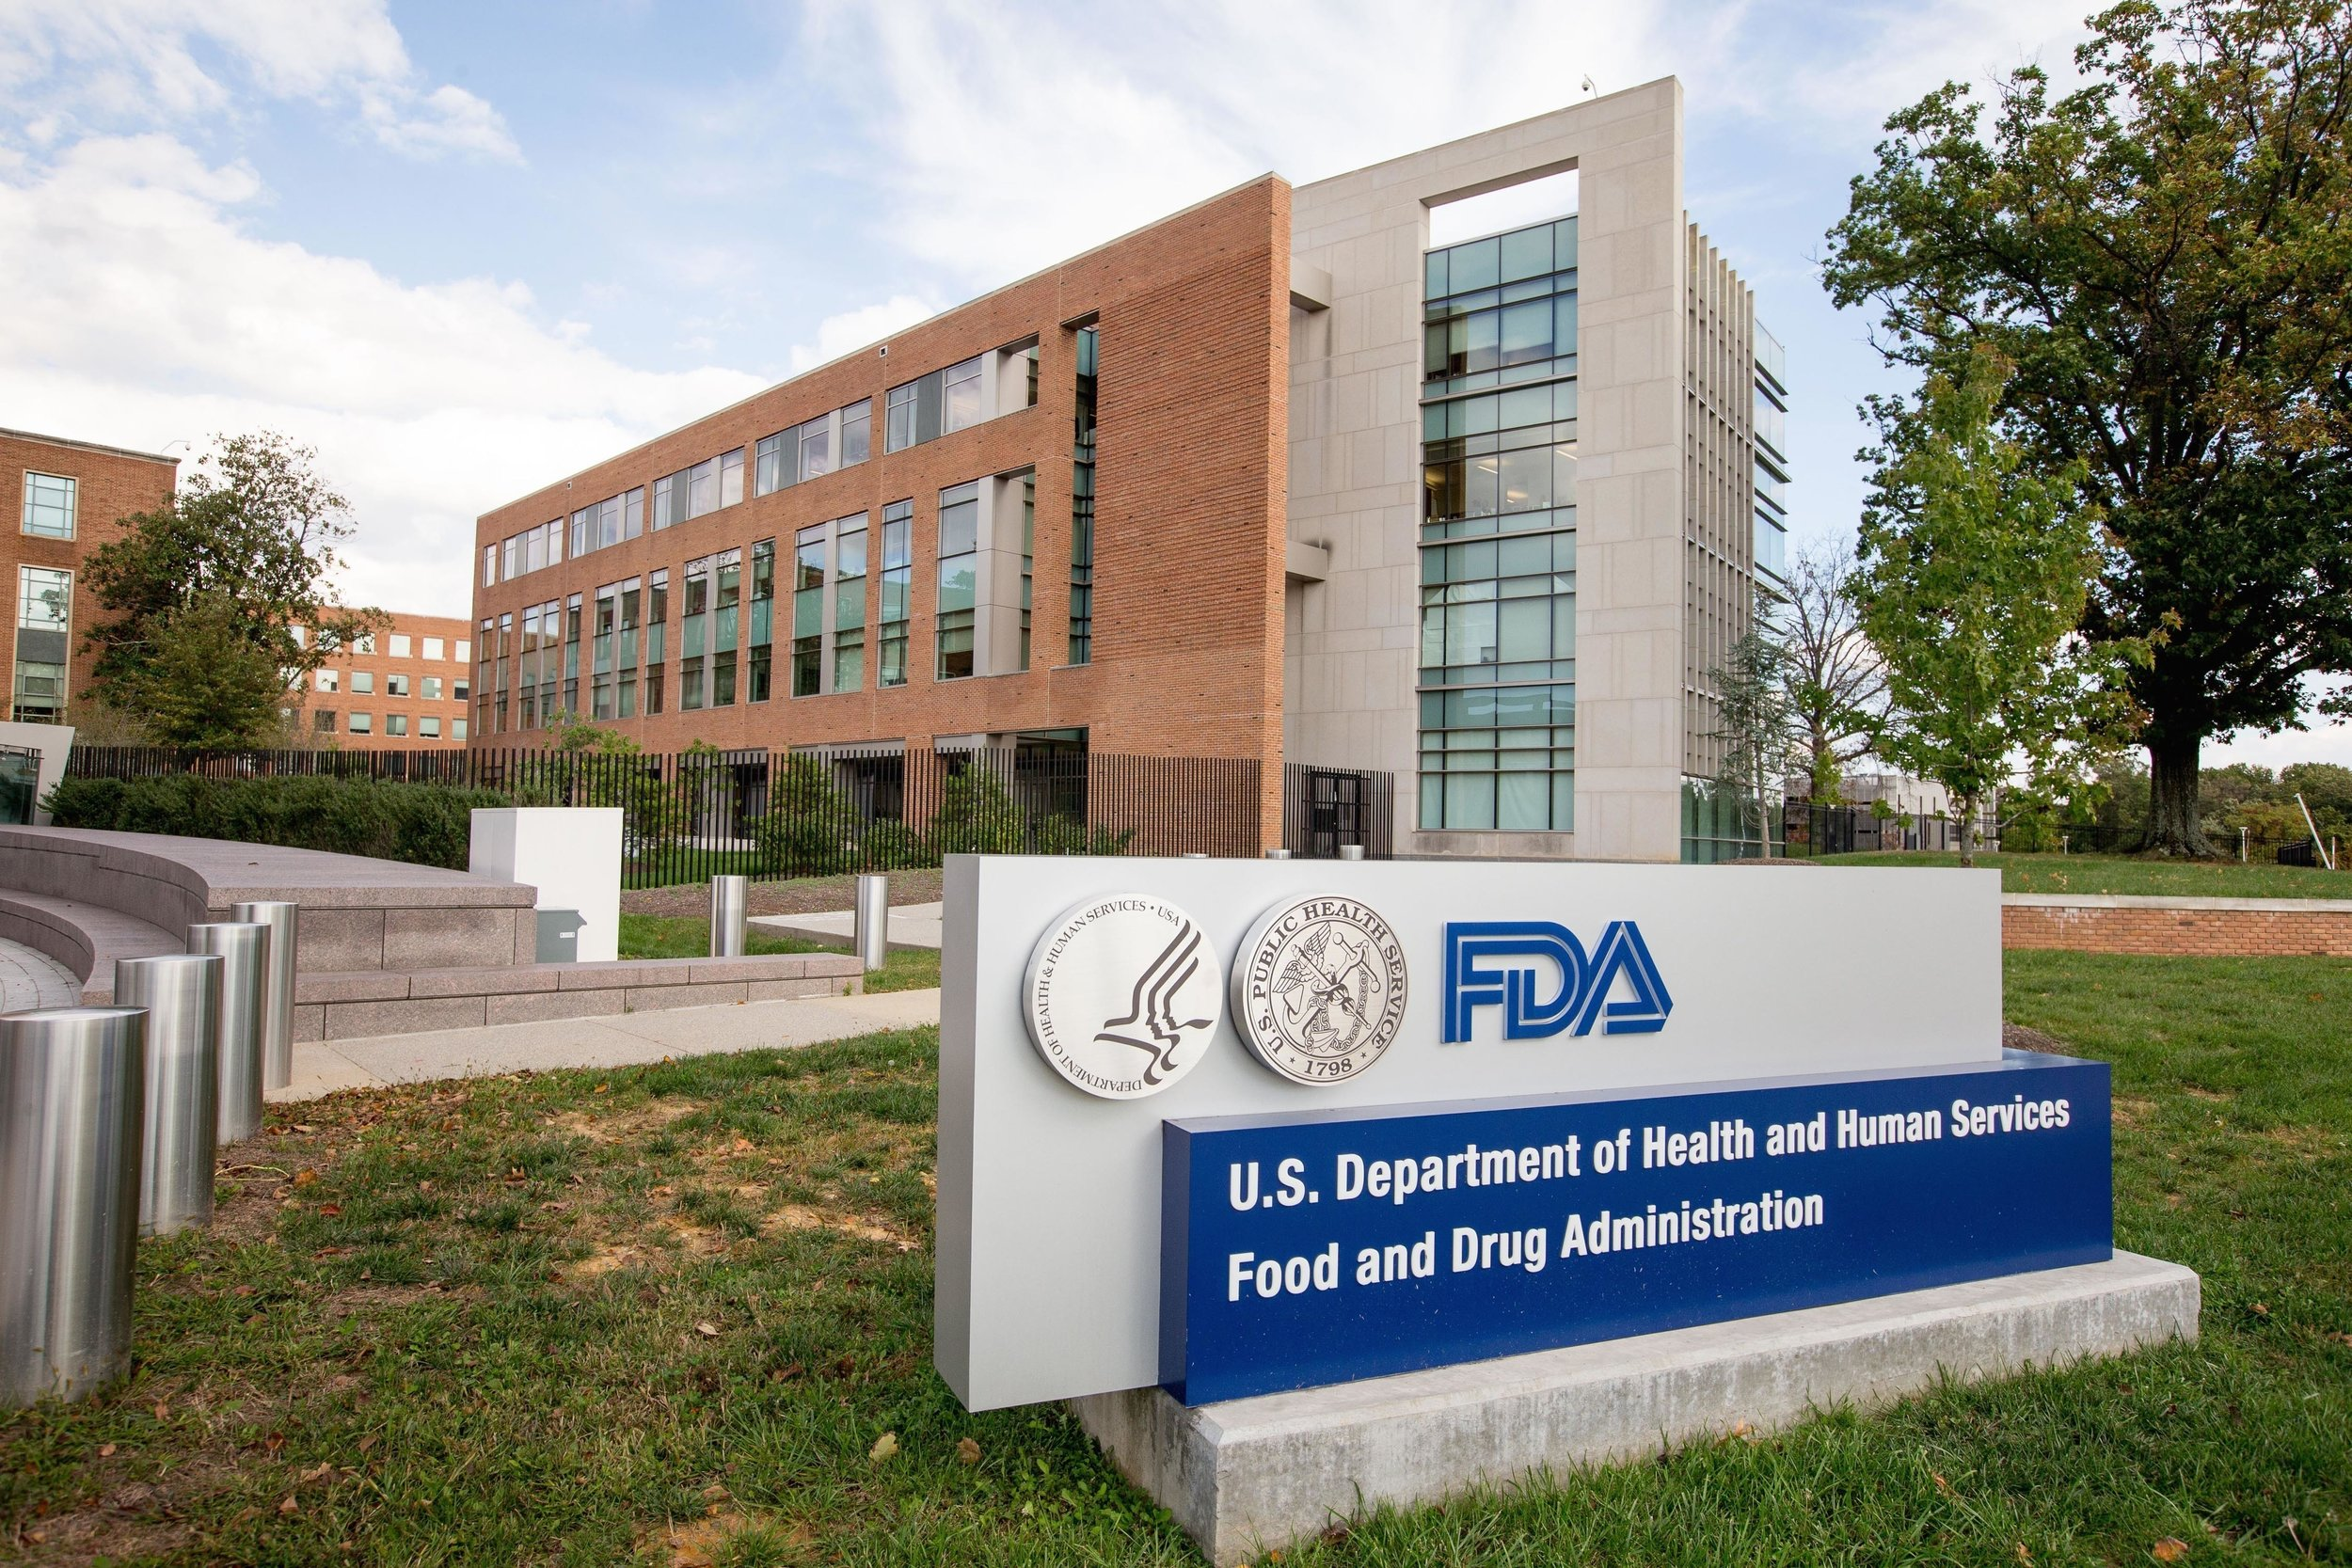 The FDA is a federal agency of the US Department of Health and Human Services. Source: Federal News Network